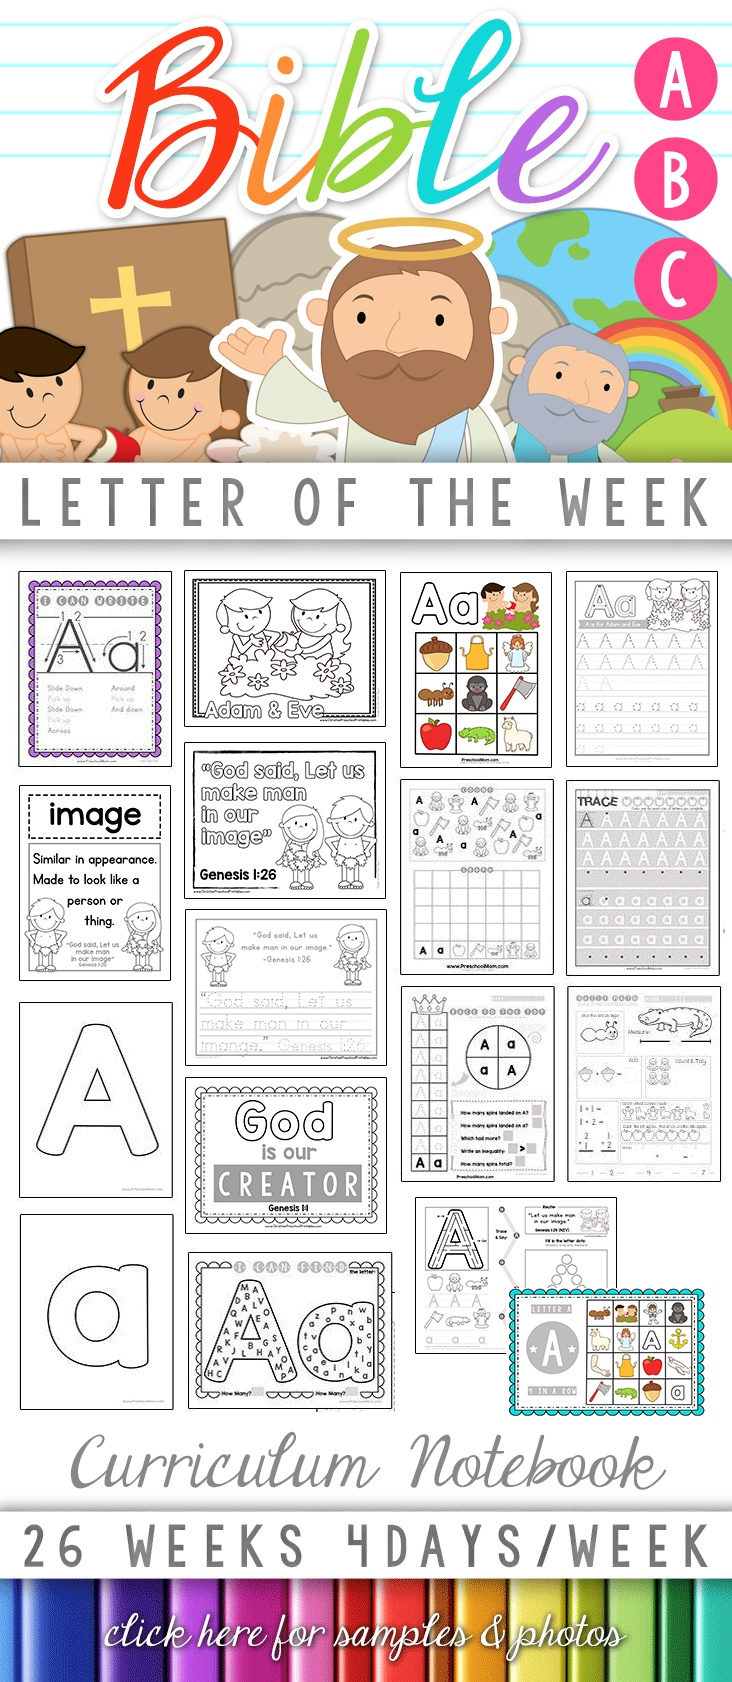 Bible Abc Printables - Christian Preschool Printables - Free Printable Bible Crafts For Preschoolers